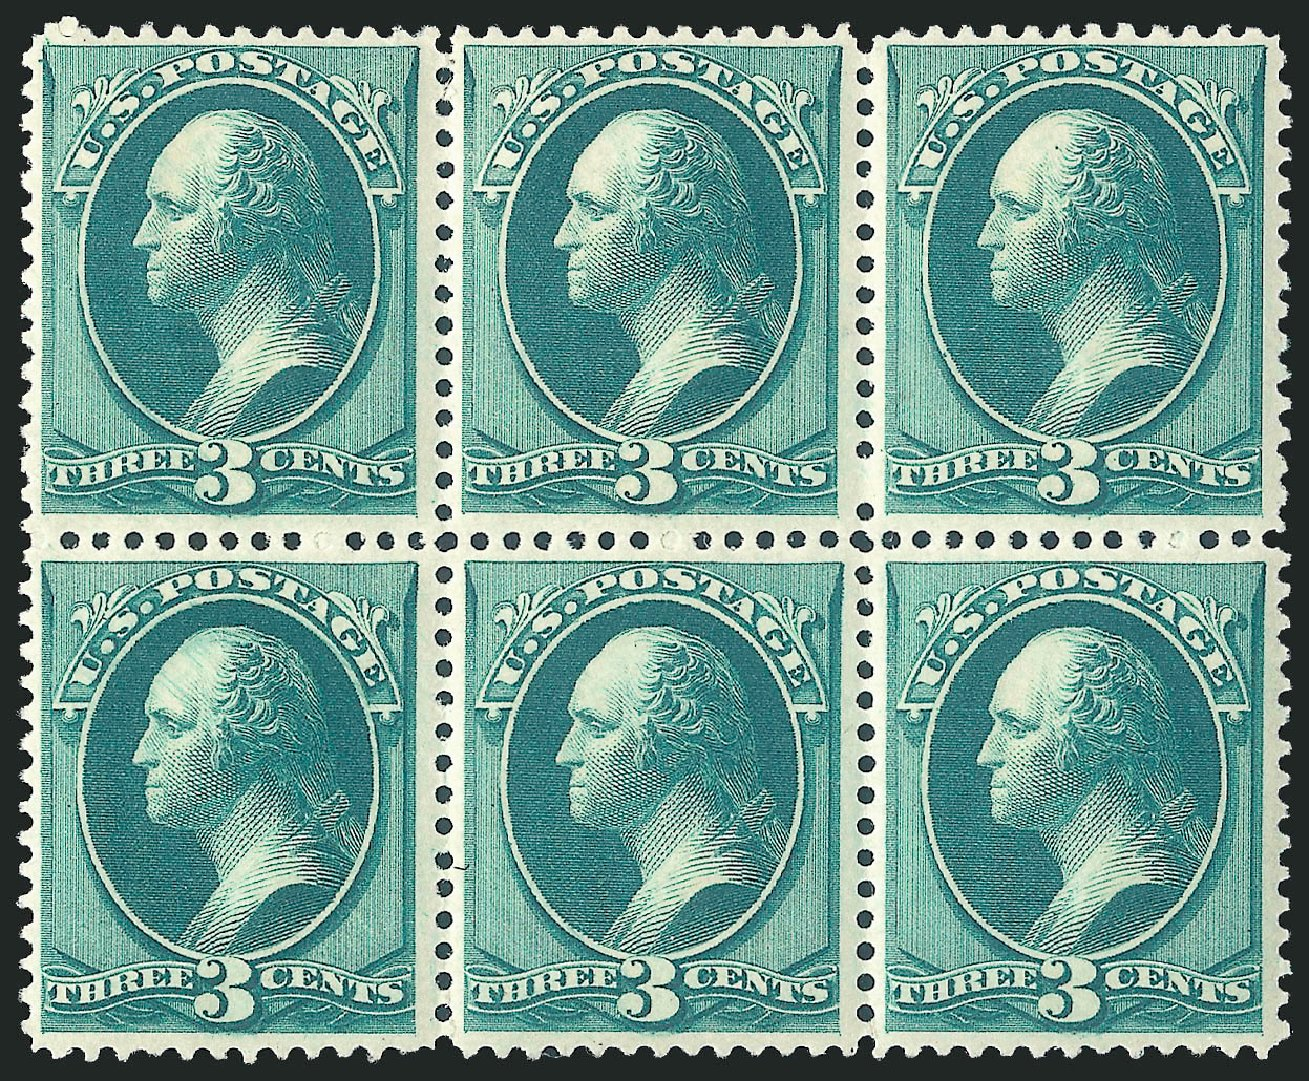 US Stamp Value Scott Catalog #184 - 3c 1879 Washington. Robert Siegel Auction Galleries, Apr 2015, Sale 1096, Lot 329